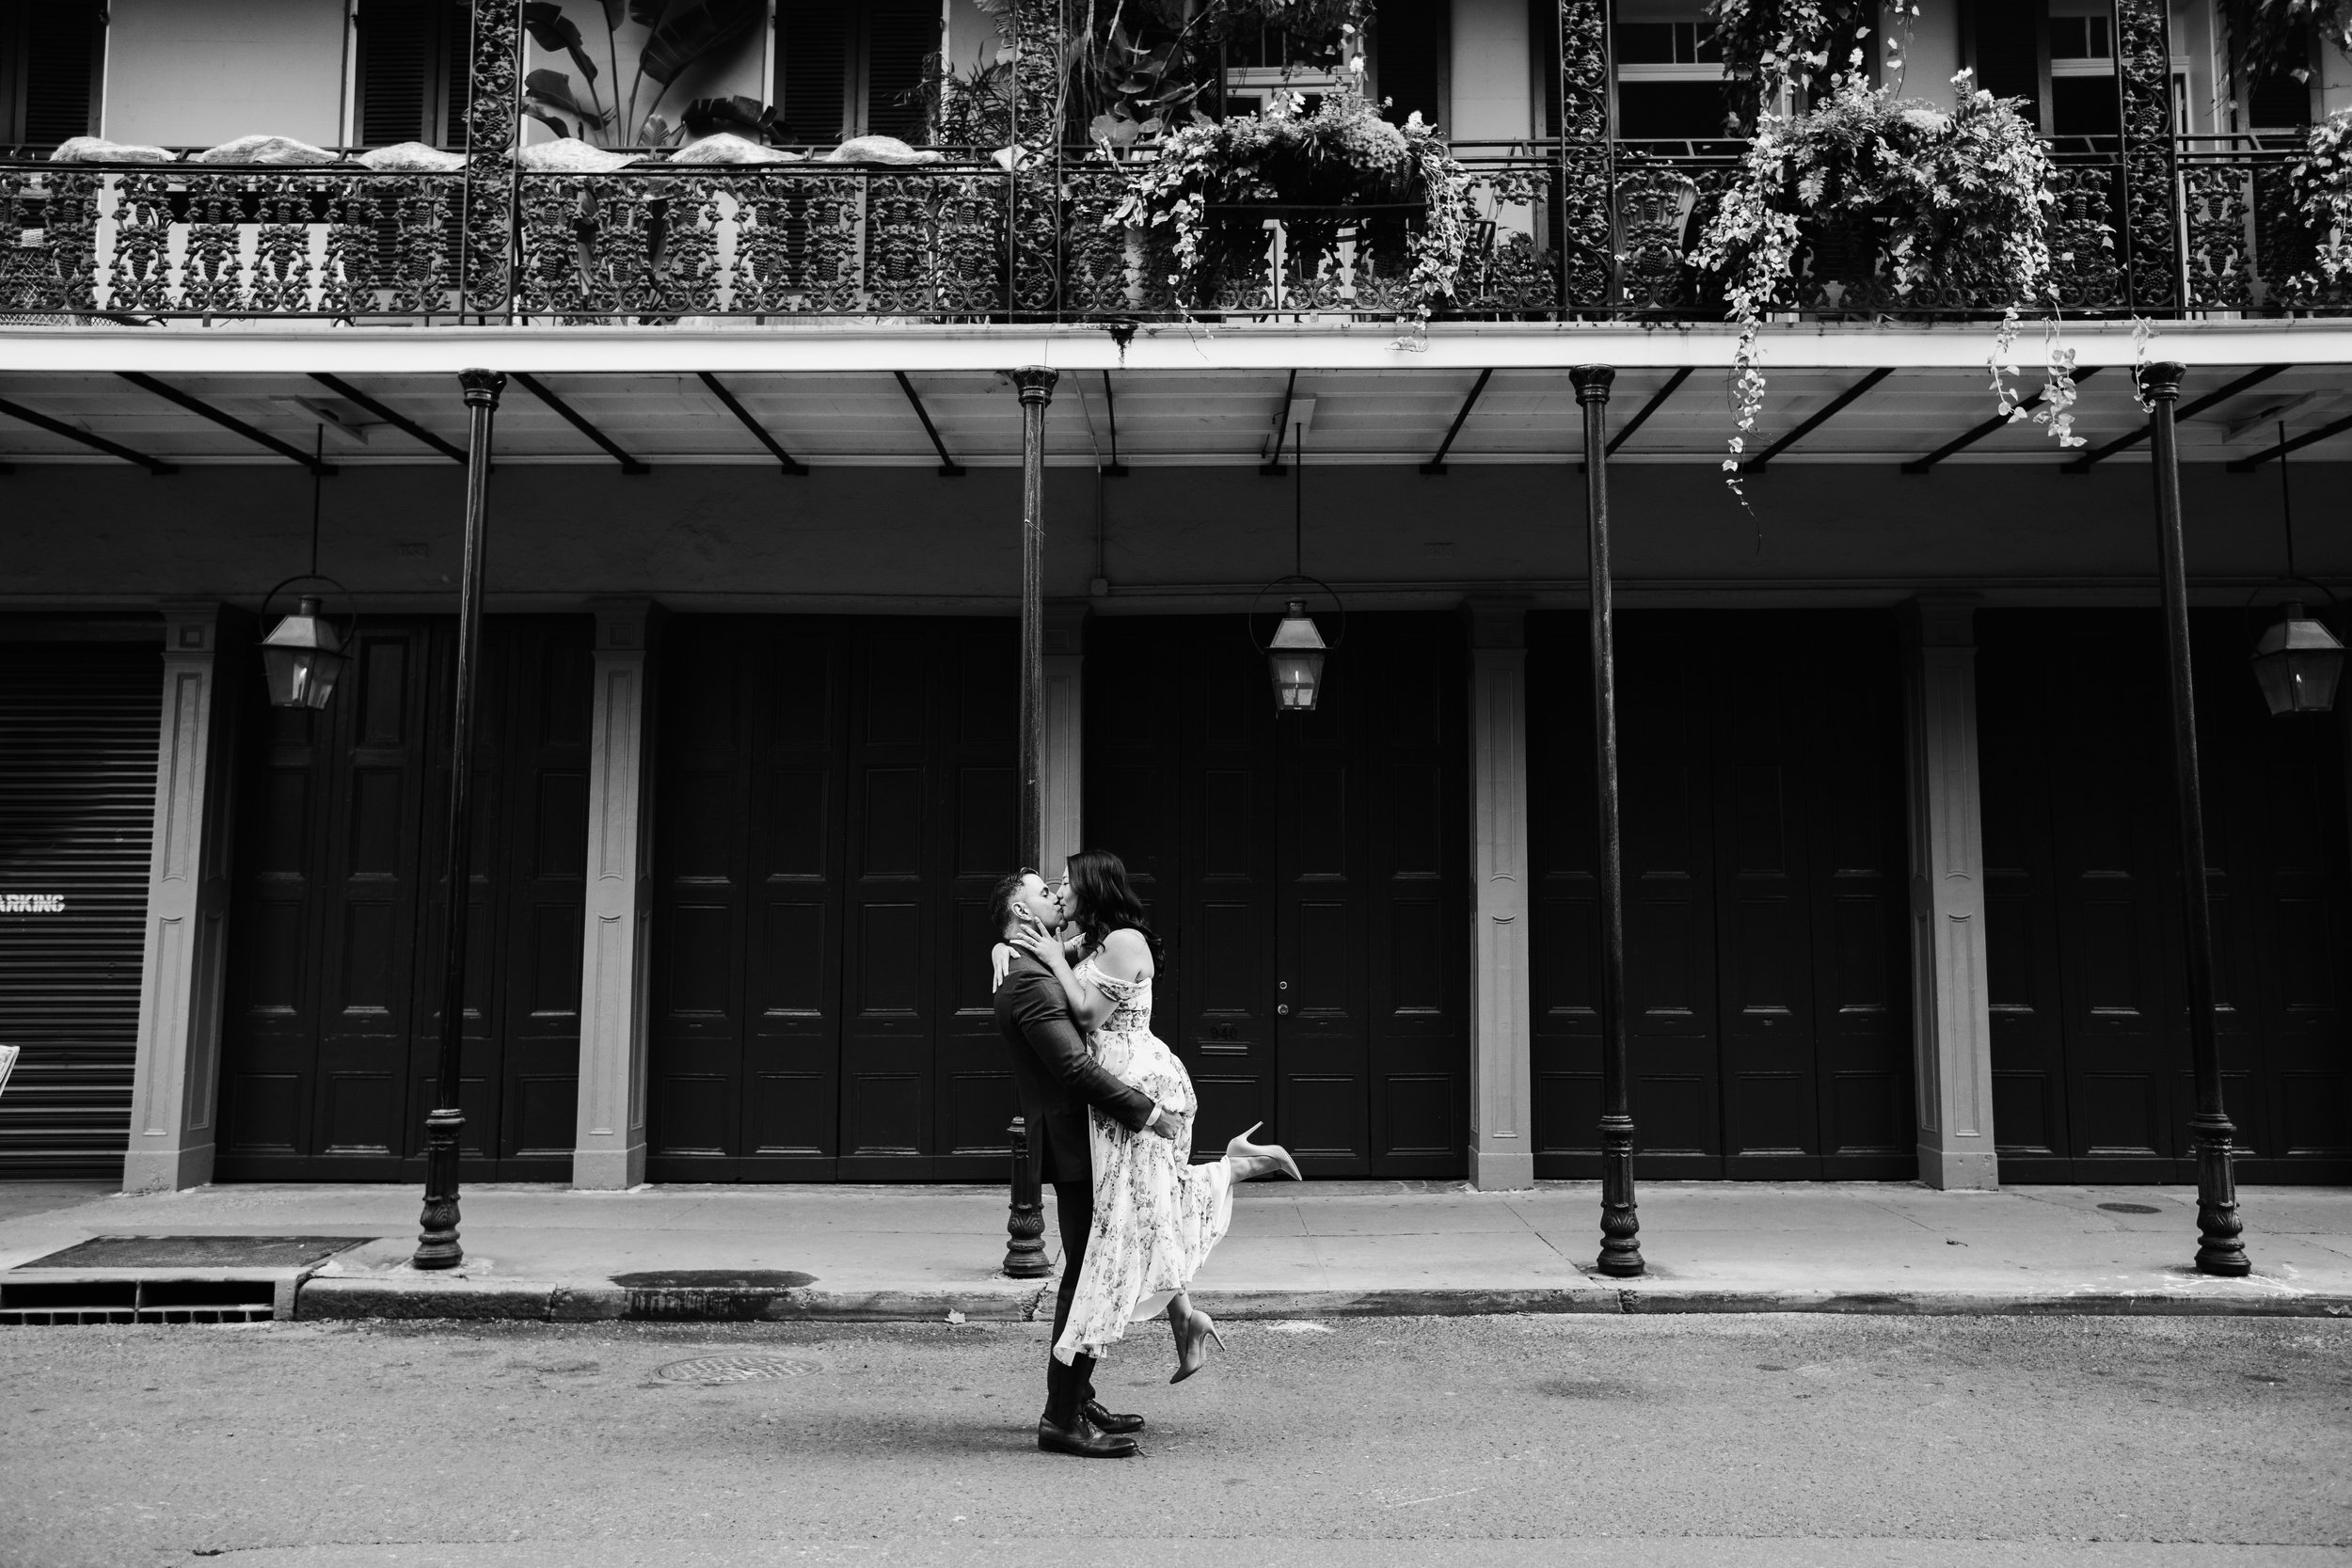 French Quarter Elopement New Orleans Wedding Photographer Ashley Biltz Photography15.jpg